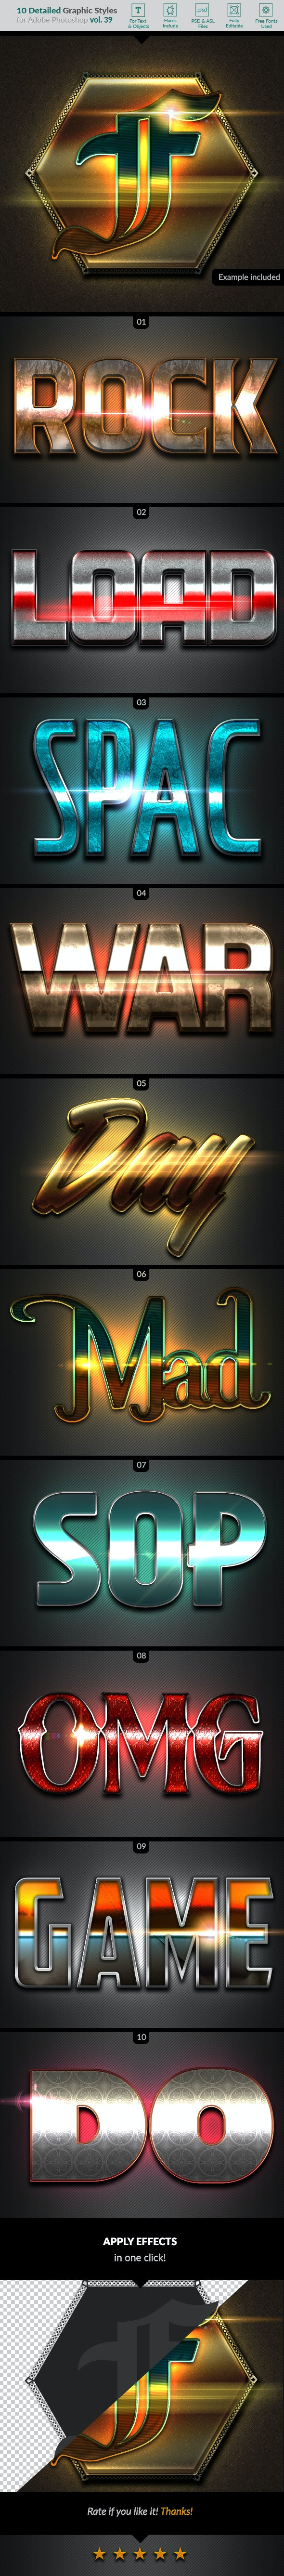 10 Text Effects Vol. 39 - Styles Photoshop